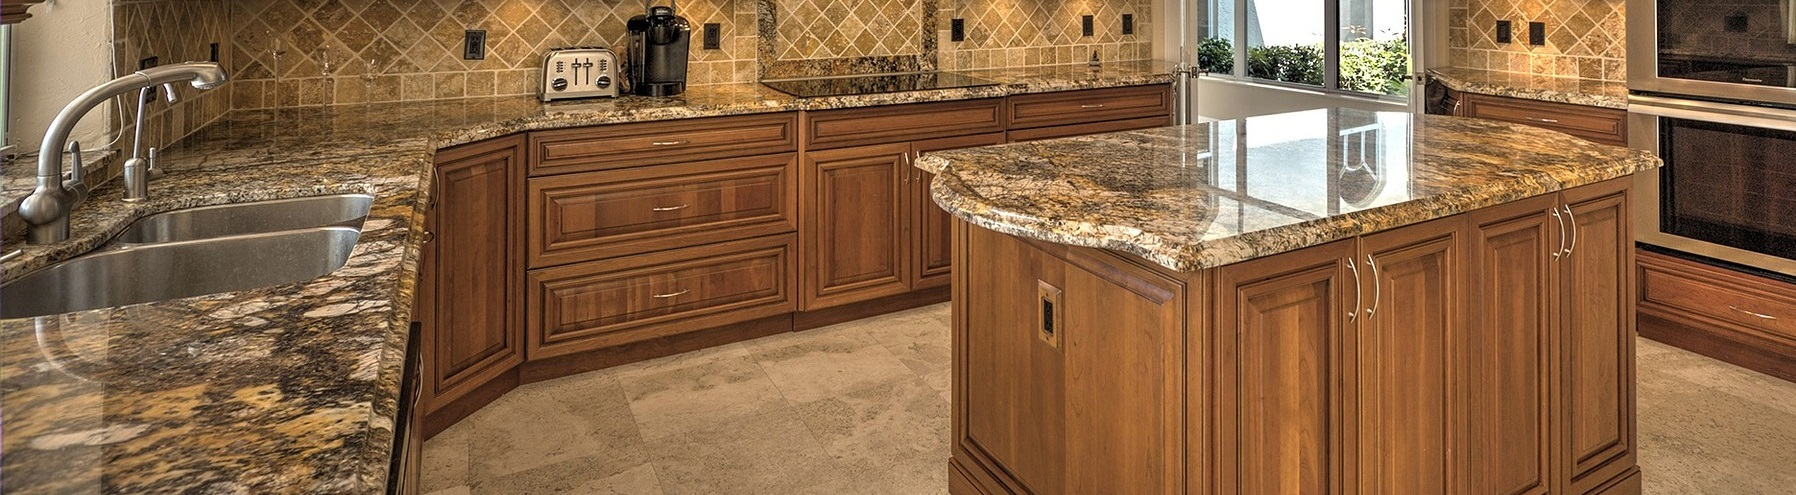 Granite Sealing Kitchen Granite Countertop Sealing Marble Countertop Sealing Bathroom Granite Countertop Sealing Marble Countertop Sealing Brauner's Granite Sealing Concord Pittsburg Antioch SF Bay Area Northern California Benicia Marysville